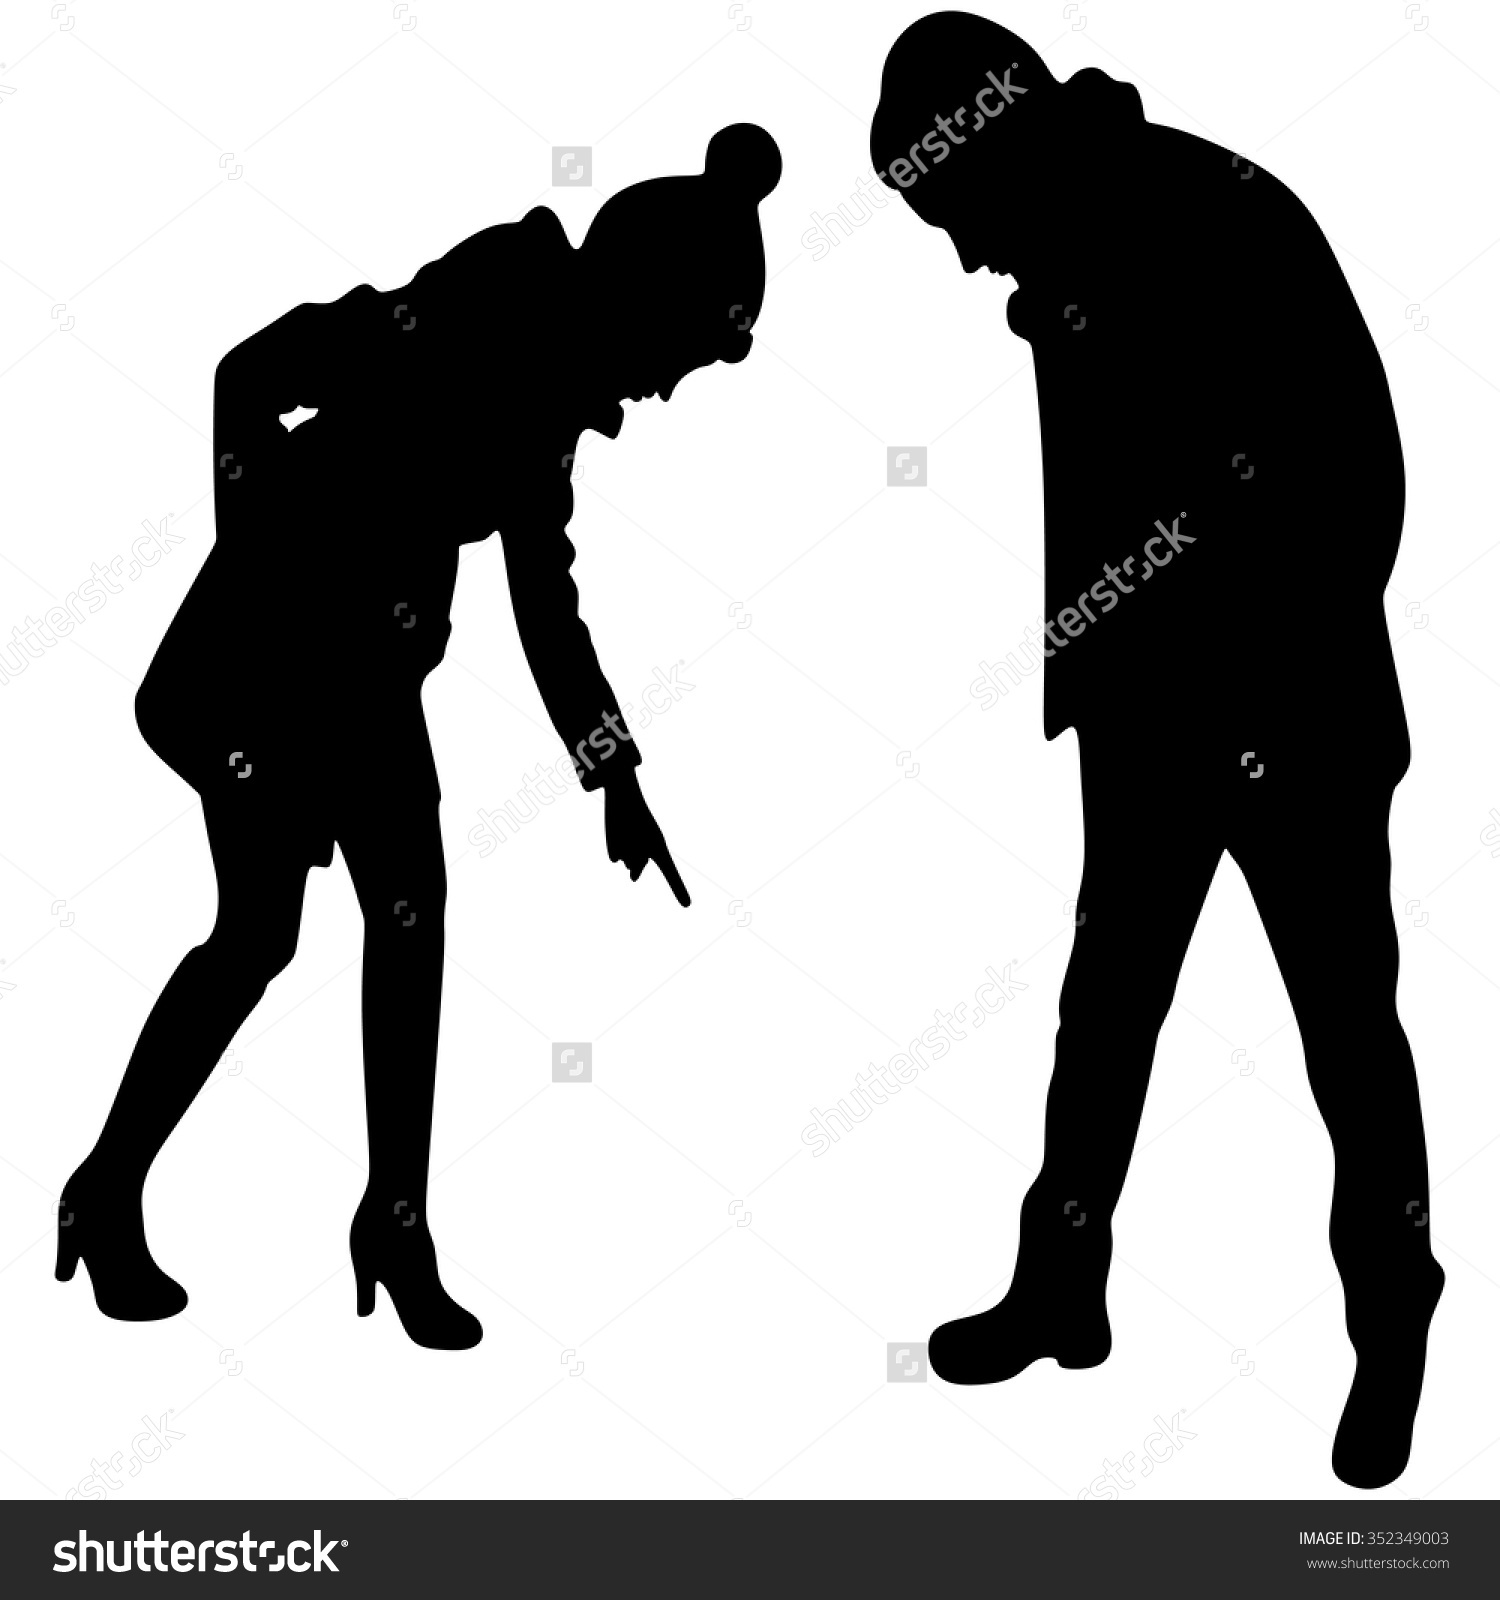 Person Looking Down Clipart (64+).